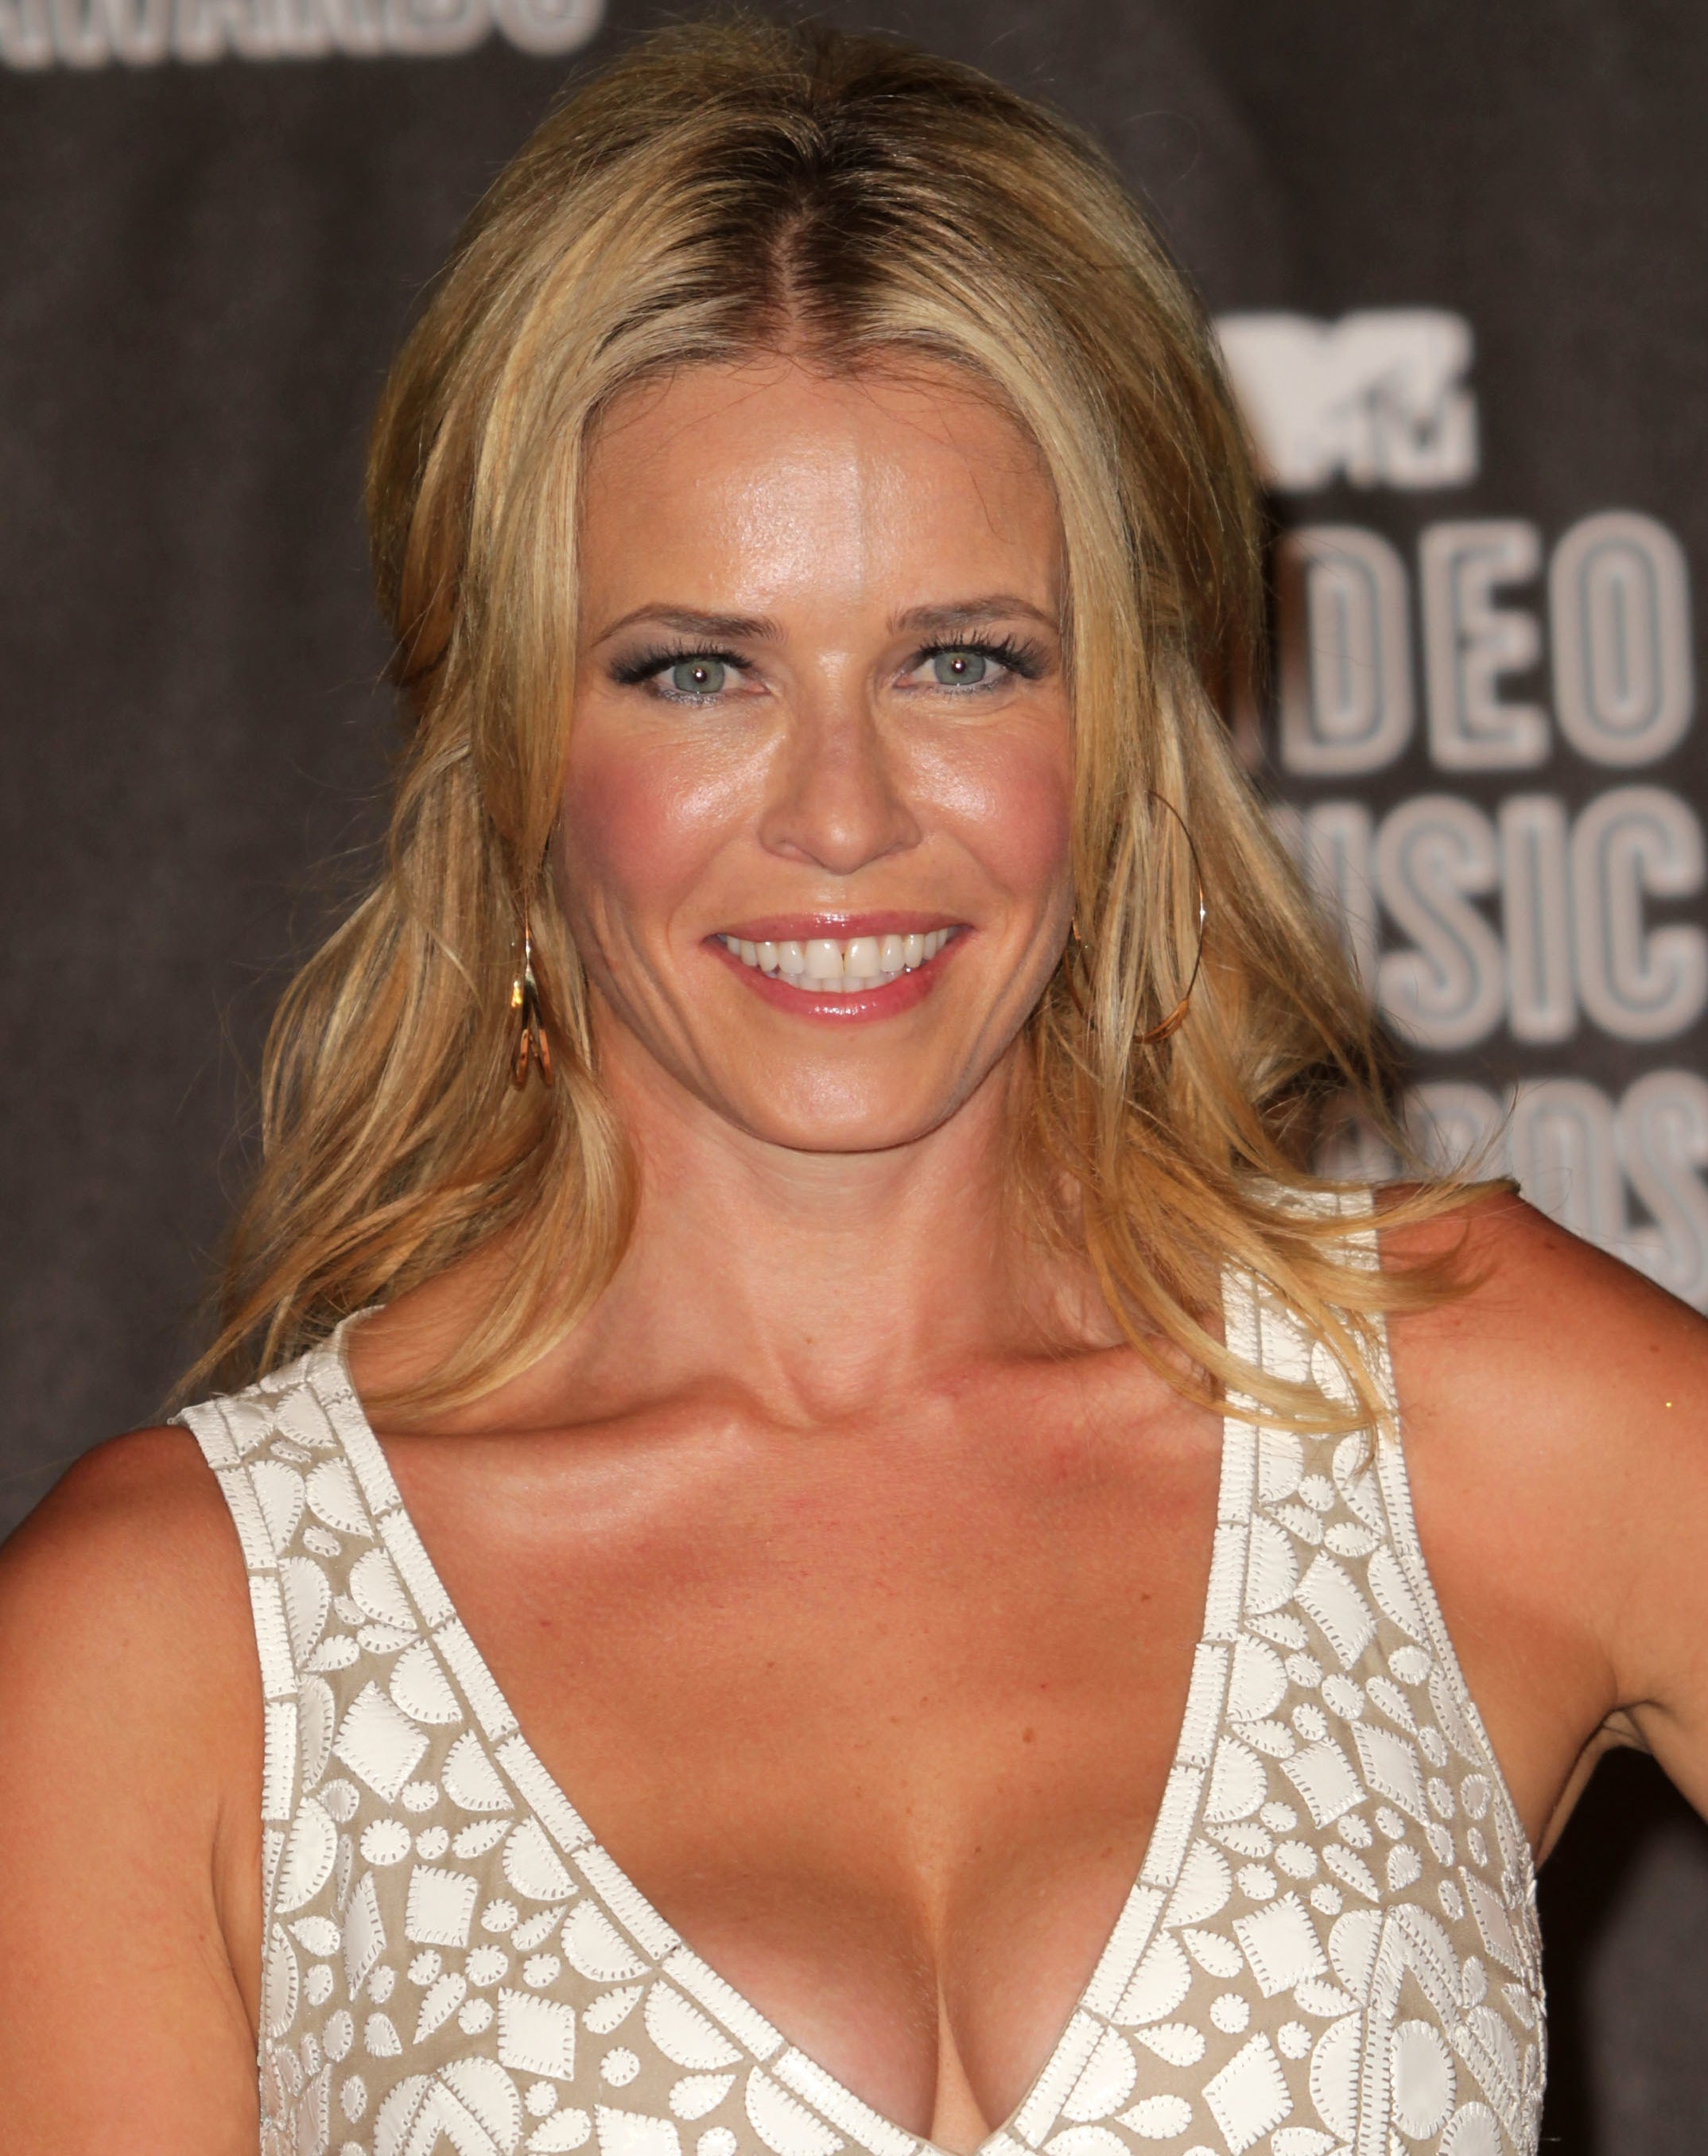 Chelsea Handler in a white patterned dress in the press room of the 2010 VMAs.